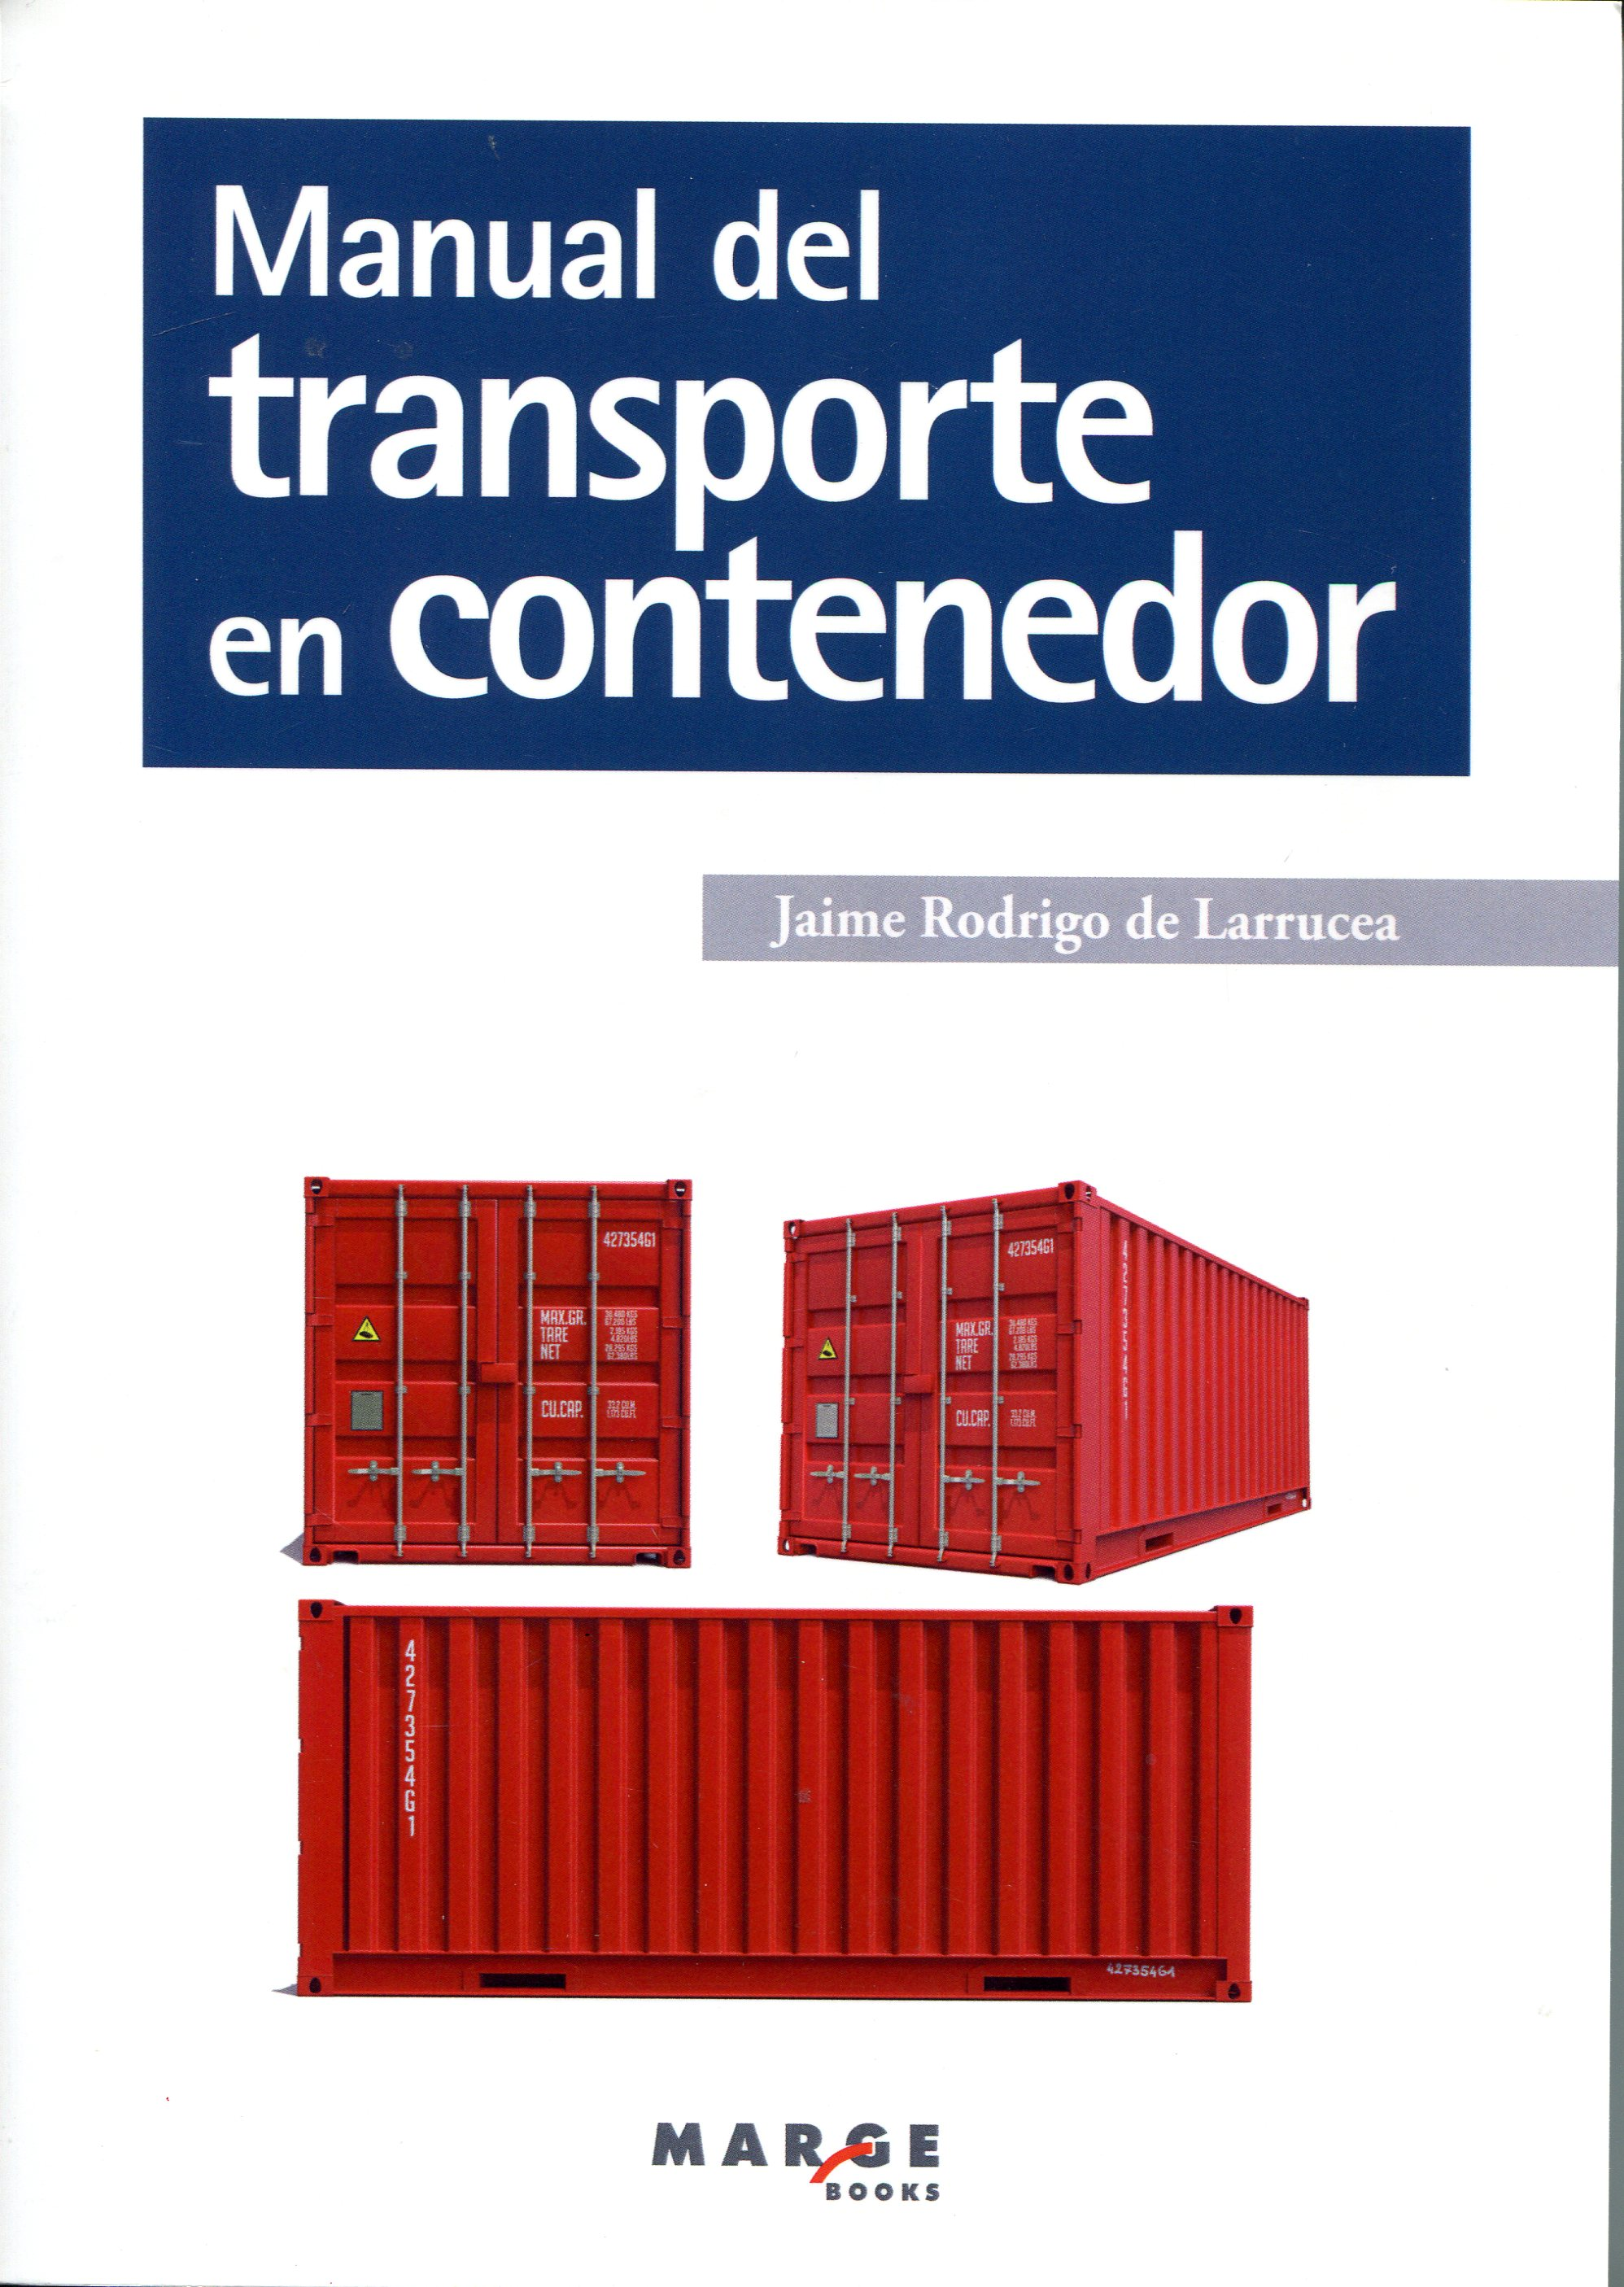 Manual del transporte en contenedor. 9788417313678